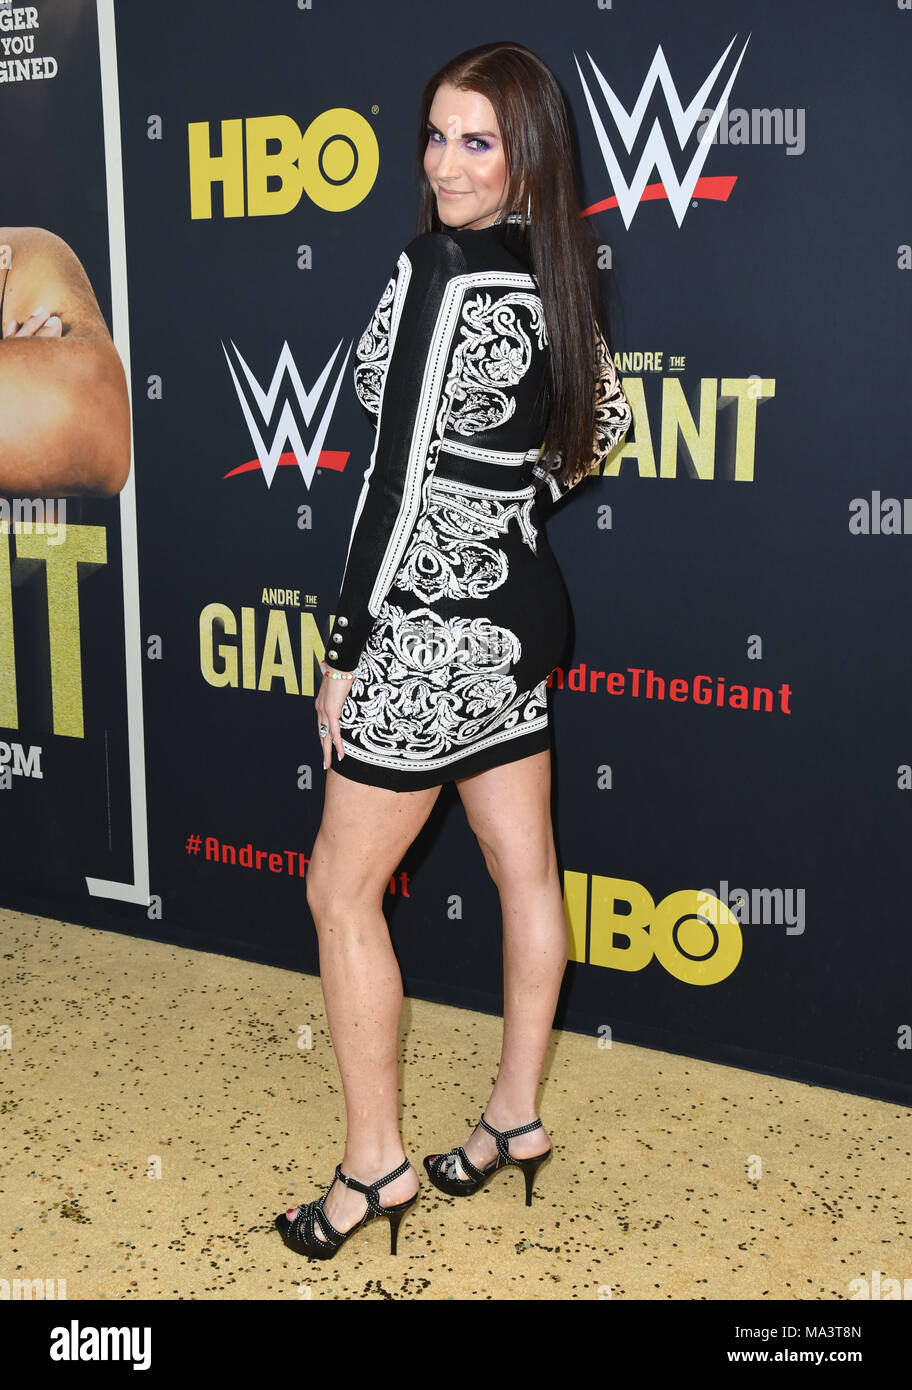 Hollywood, California, USA. 29th Mar, 2018. Stephanie McMahon. ''Andre the Giant'' Los Angeles Angeles premiere held at ACinerama Dome. Credit: Birdie Thompson/AdMedia/ZUMA Wire/Alamy Live News - Stock Image